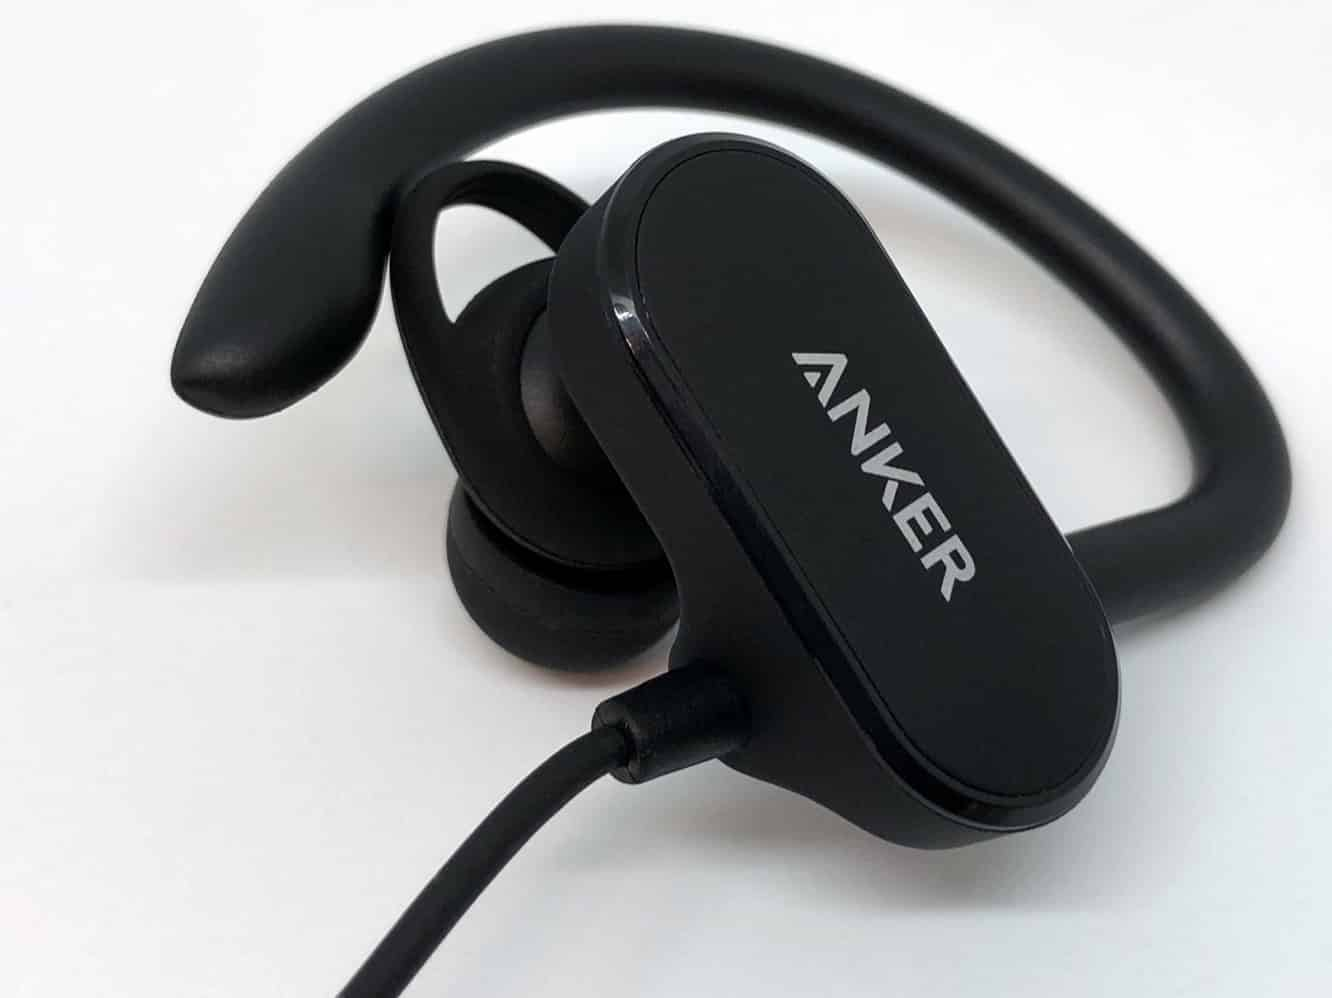 Review: Anker SoundBuds Curve Wireless Earbuds